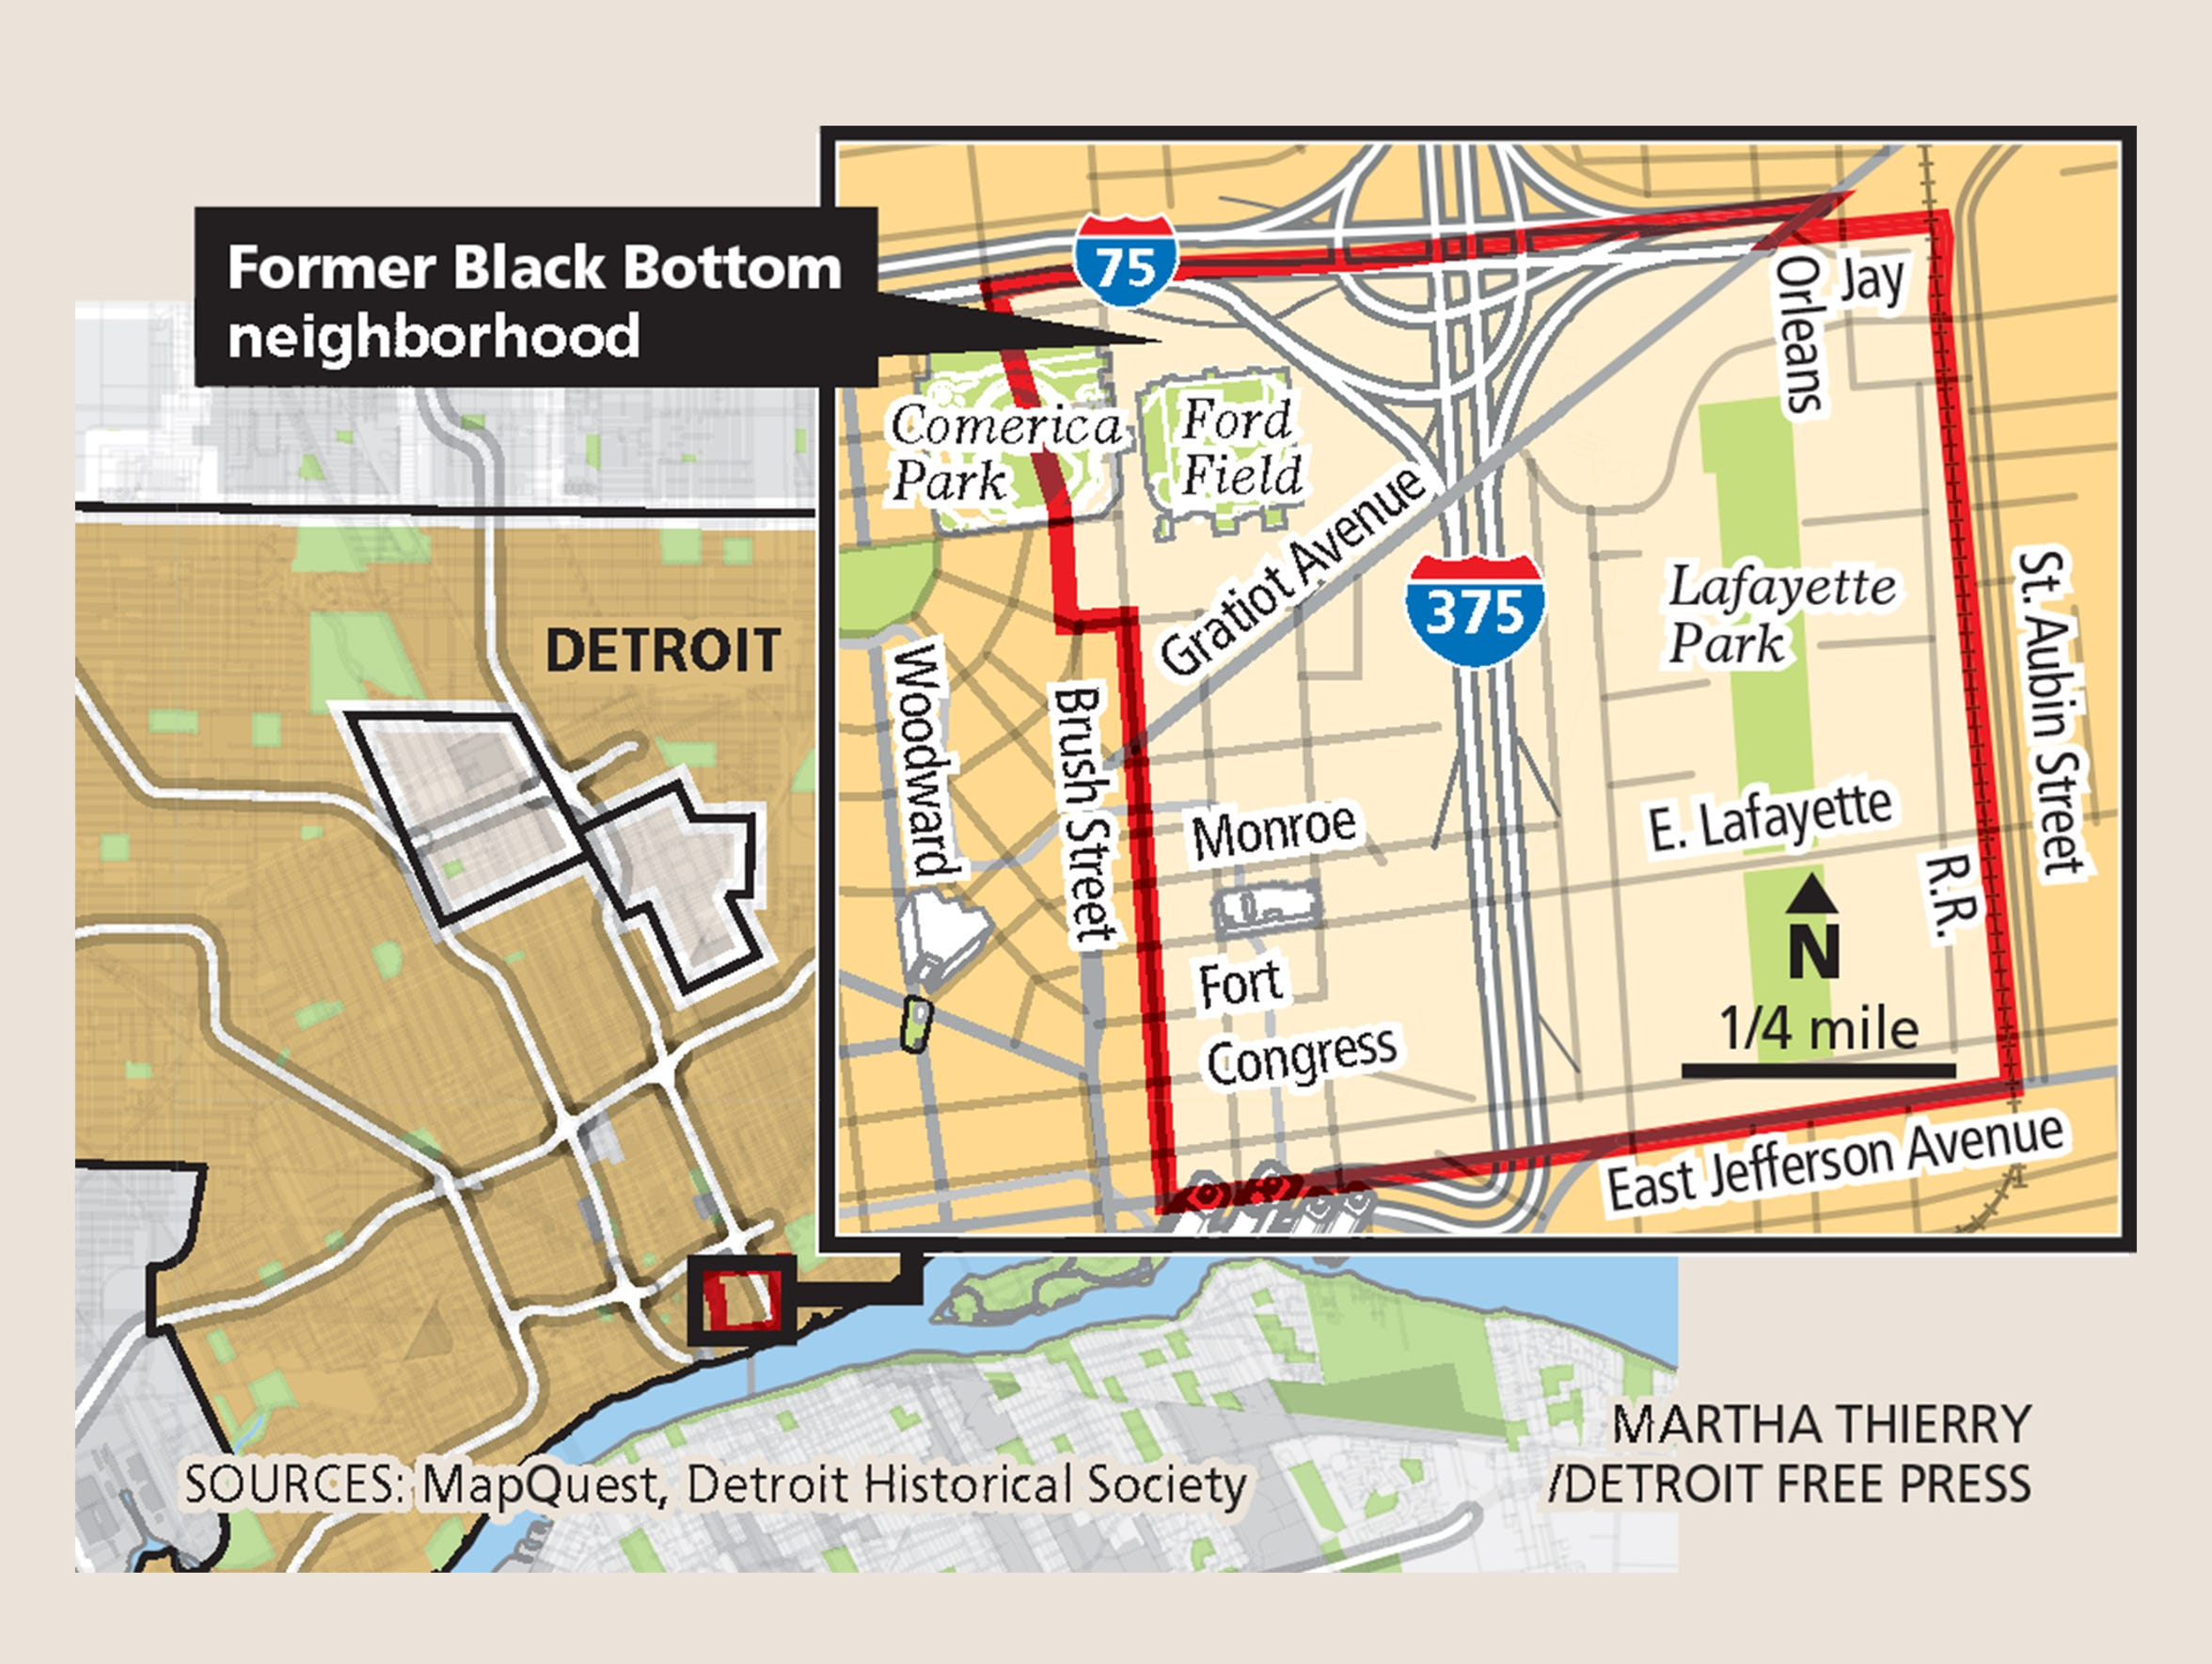 A map of the former Black Bottom neighborhood in Detroit.